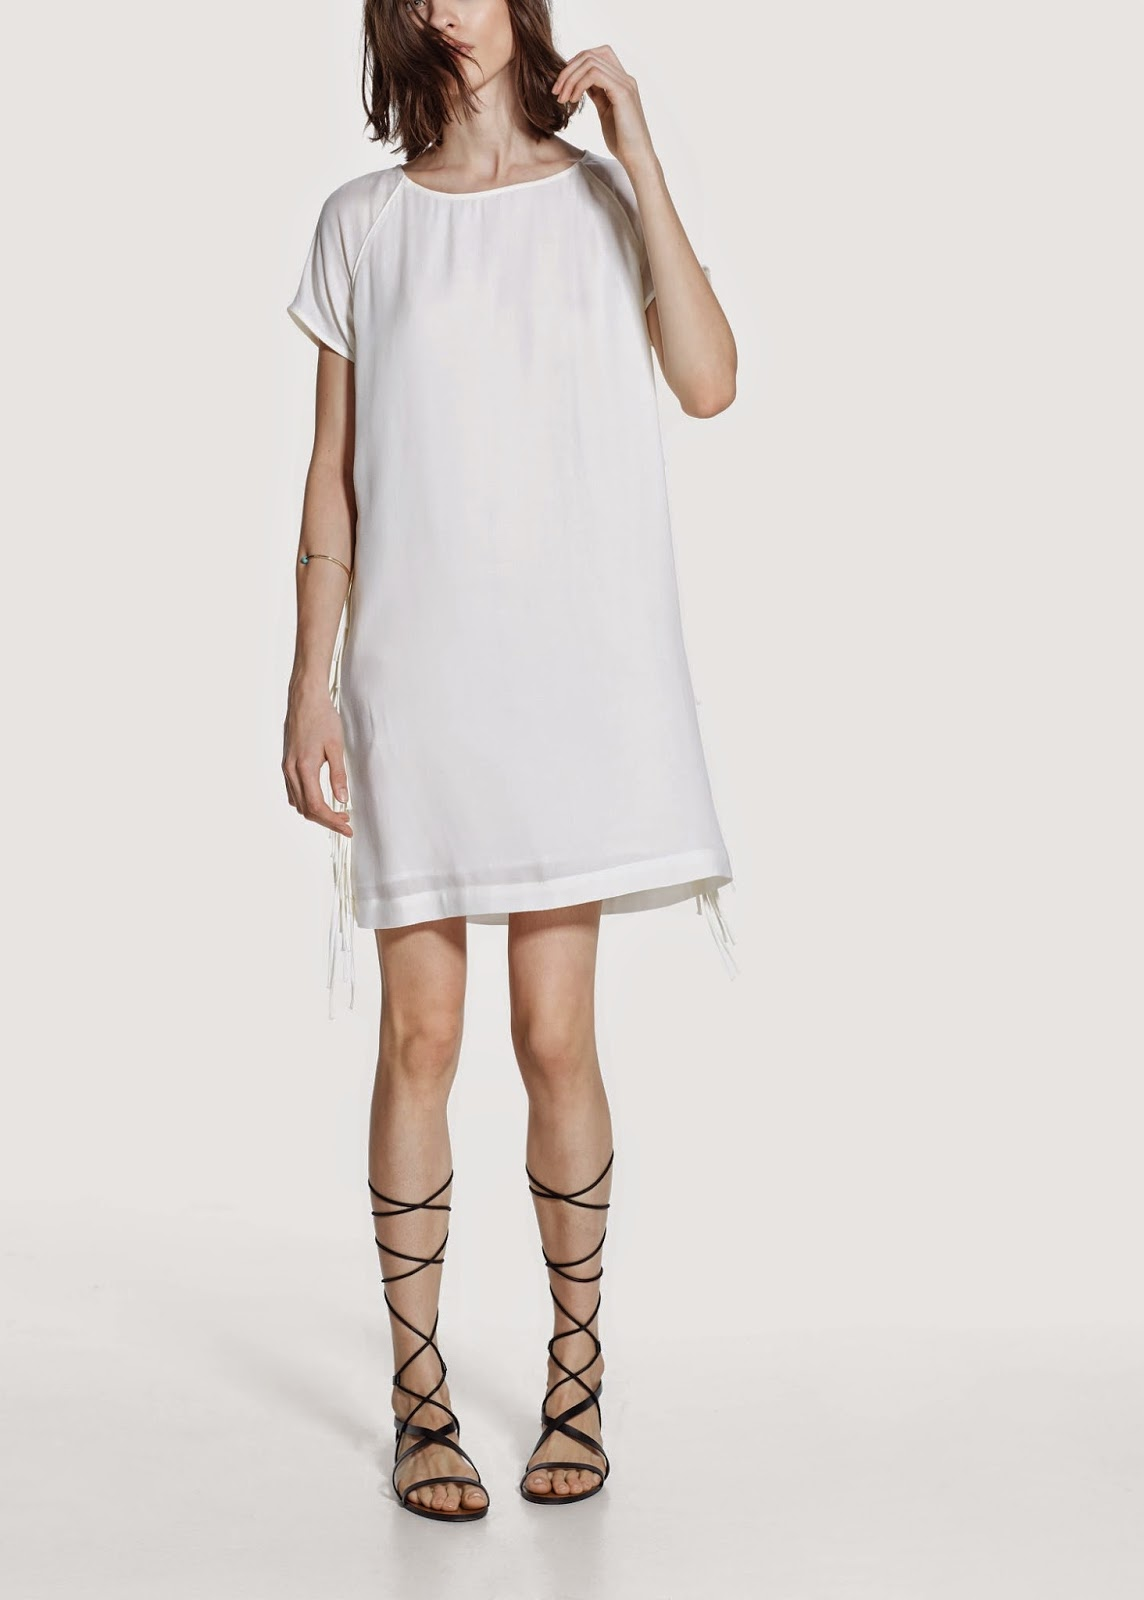 mango white tassel dress